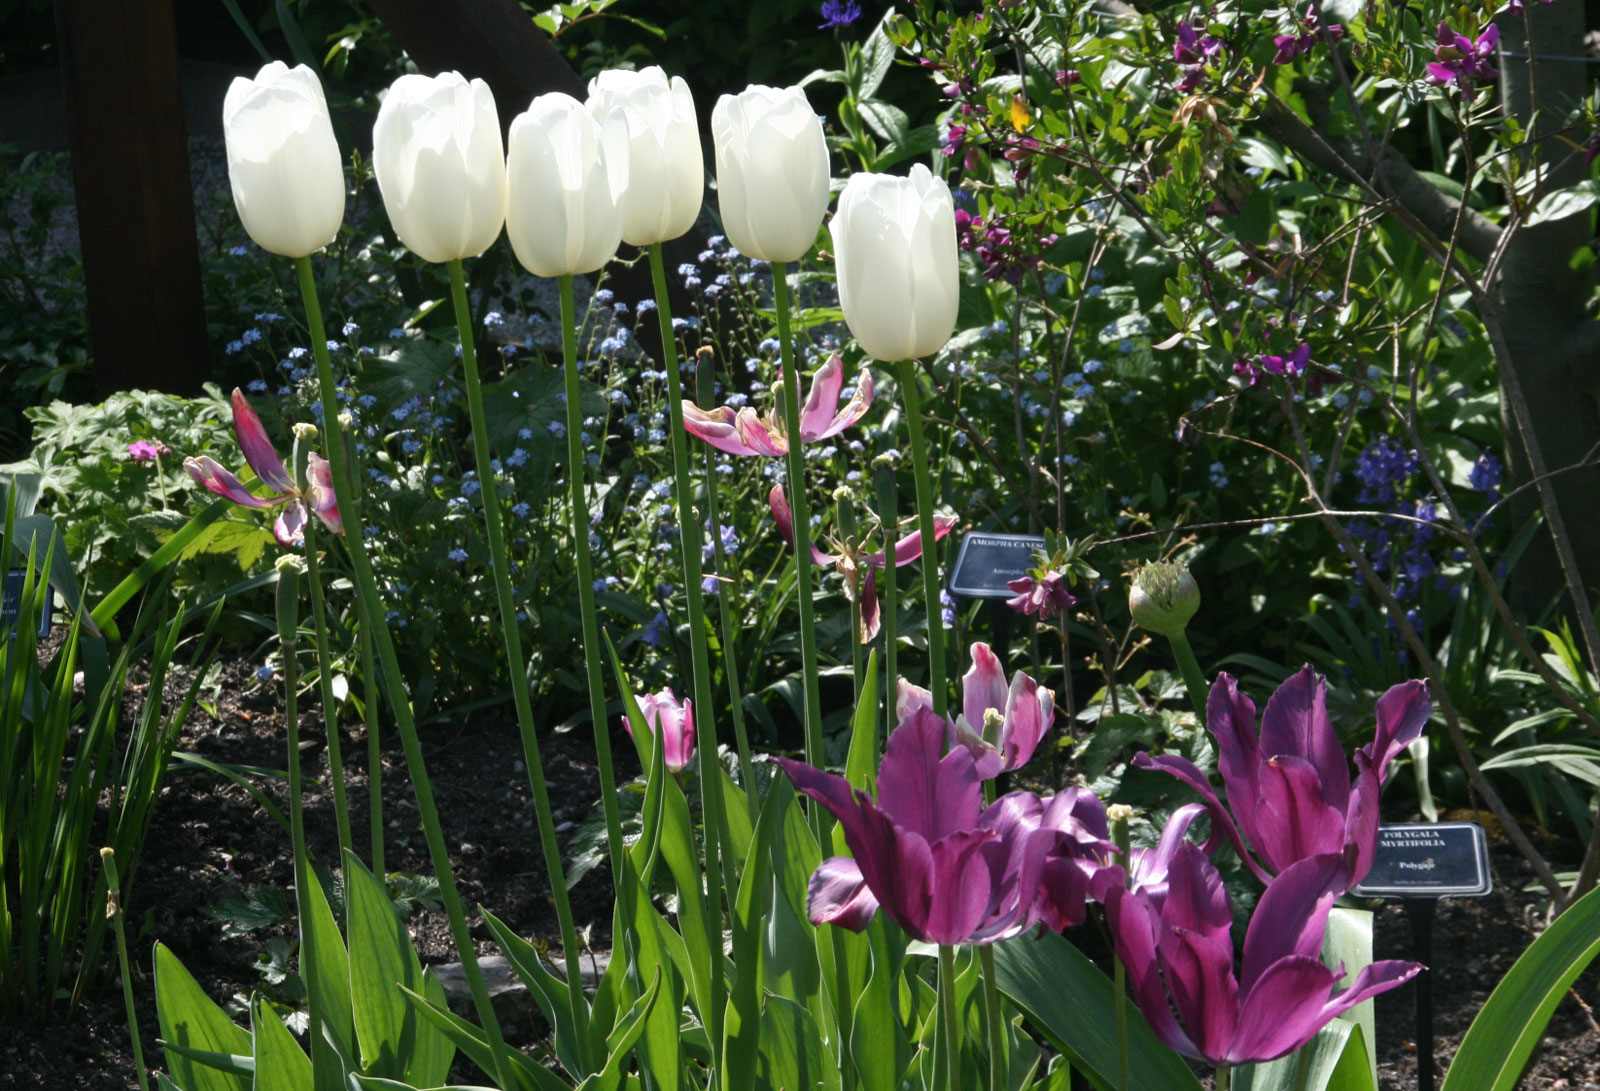 Garden of the Five Senses in Yvoire: the tulips.